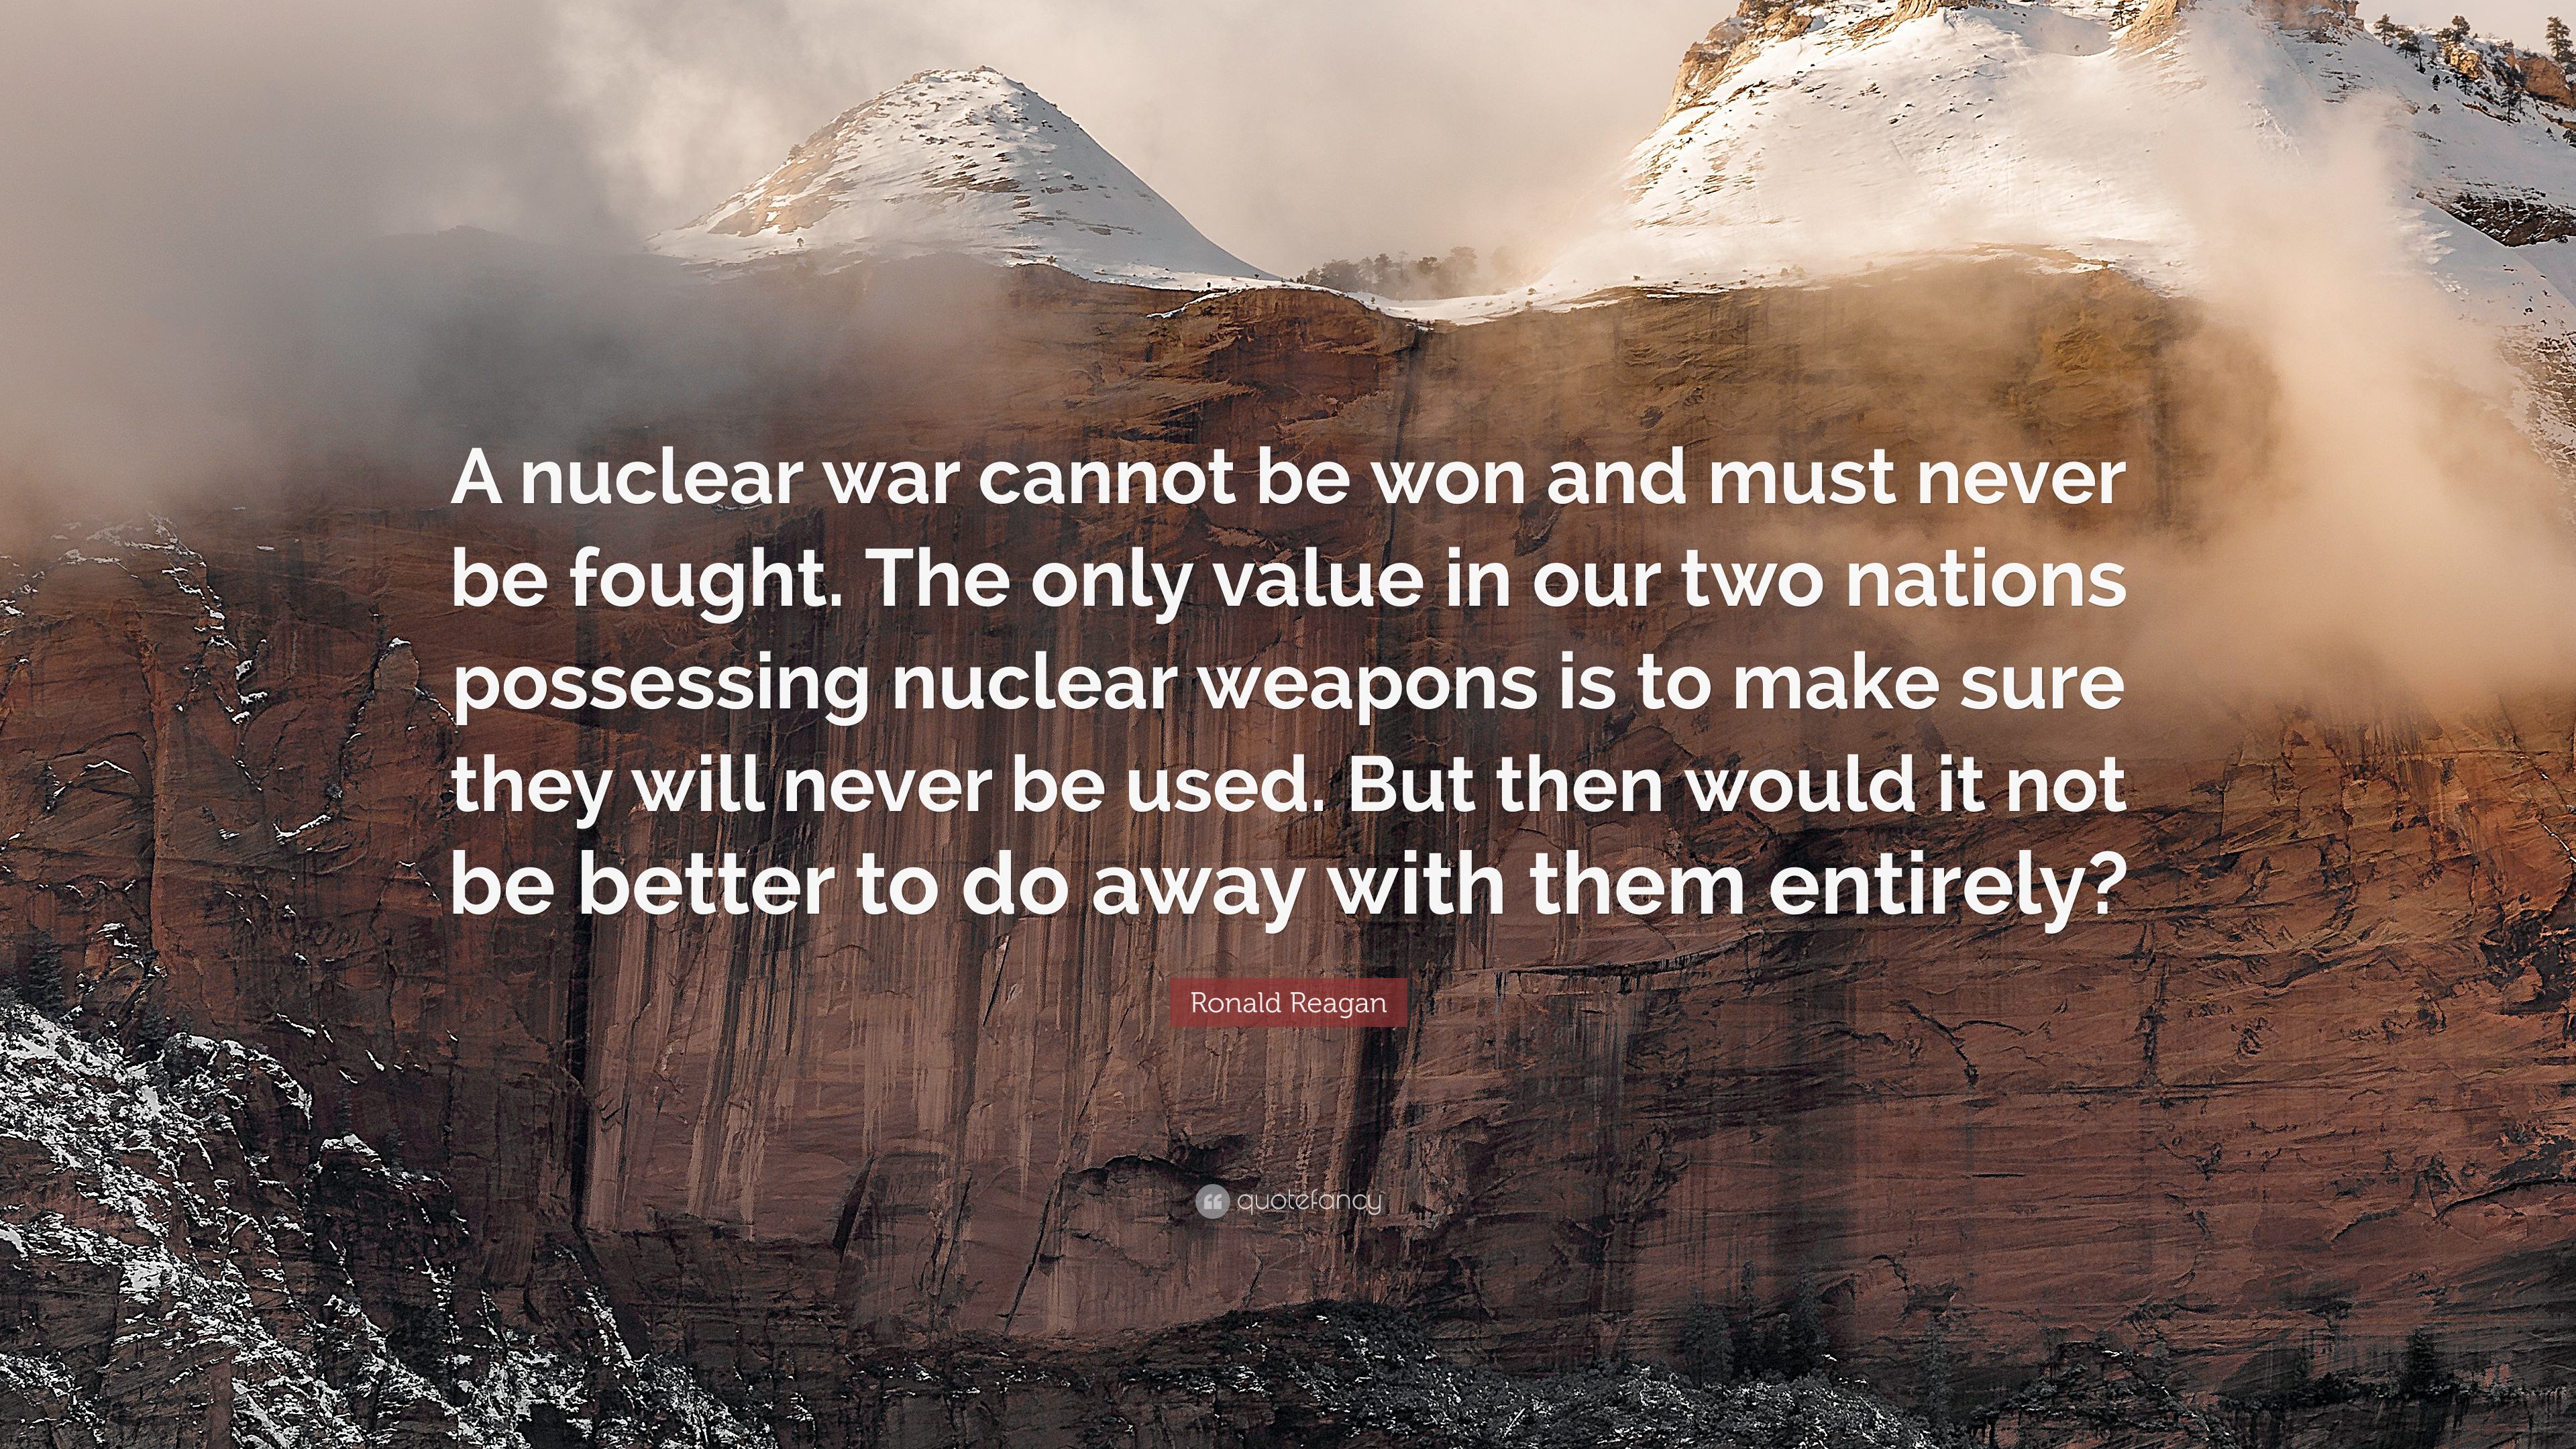 Nuclear war cannot be won and should not be fought